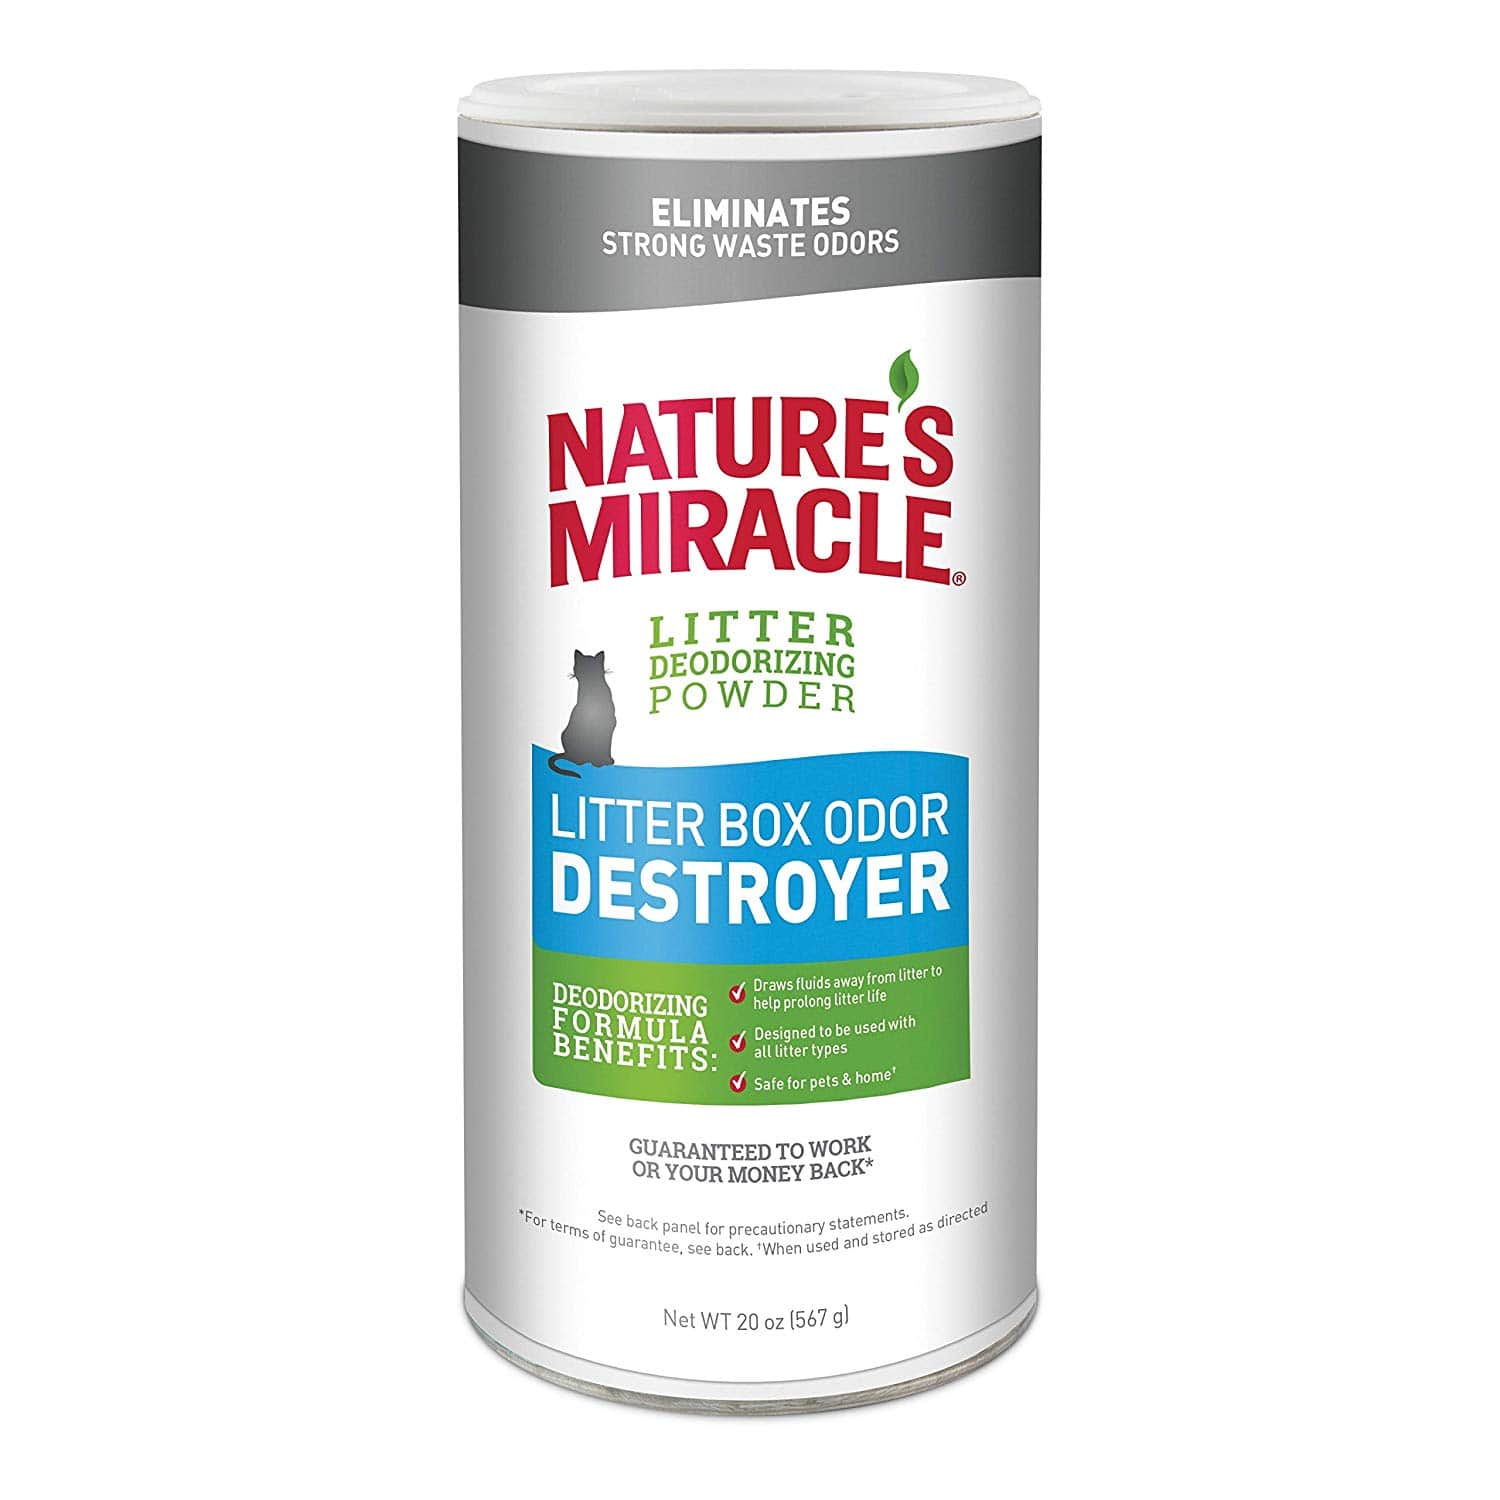 Nature's Miracle Just for Cats Odor Destroyer 20oz $3.37 with s/s